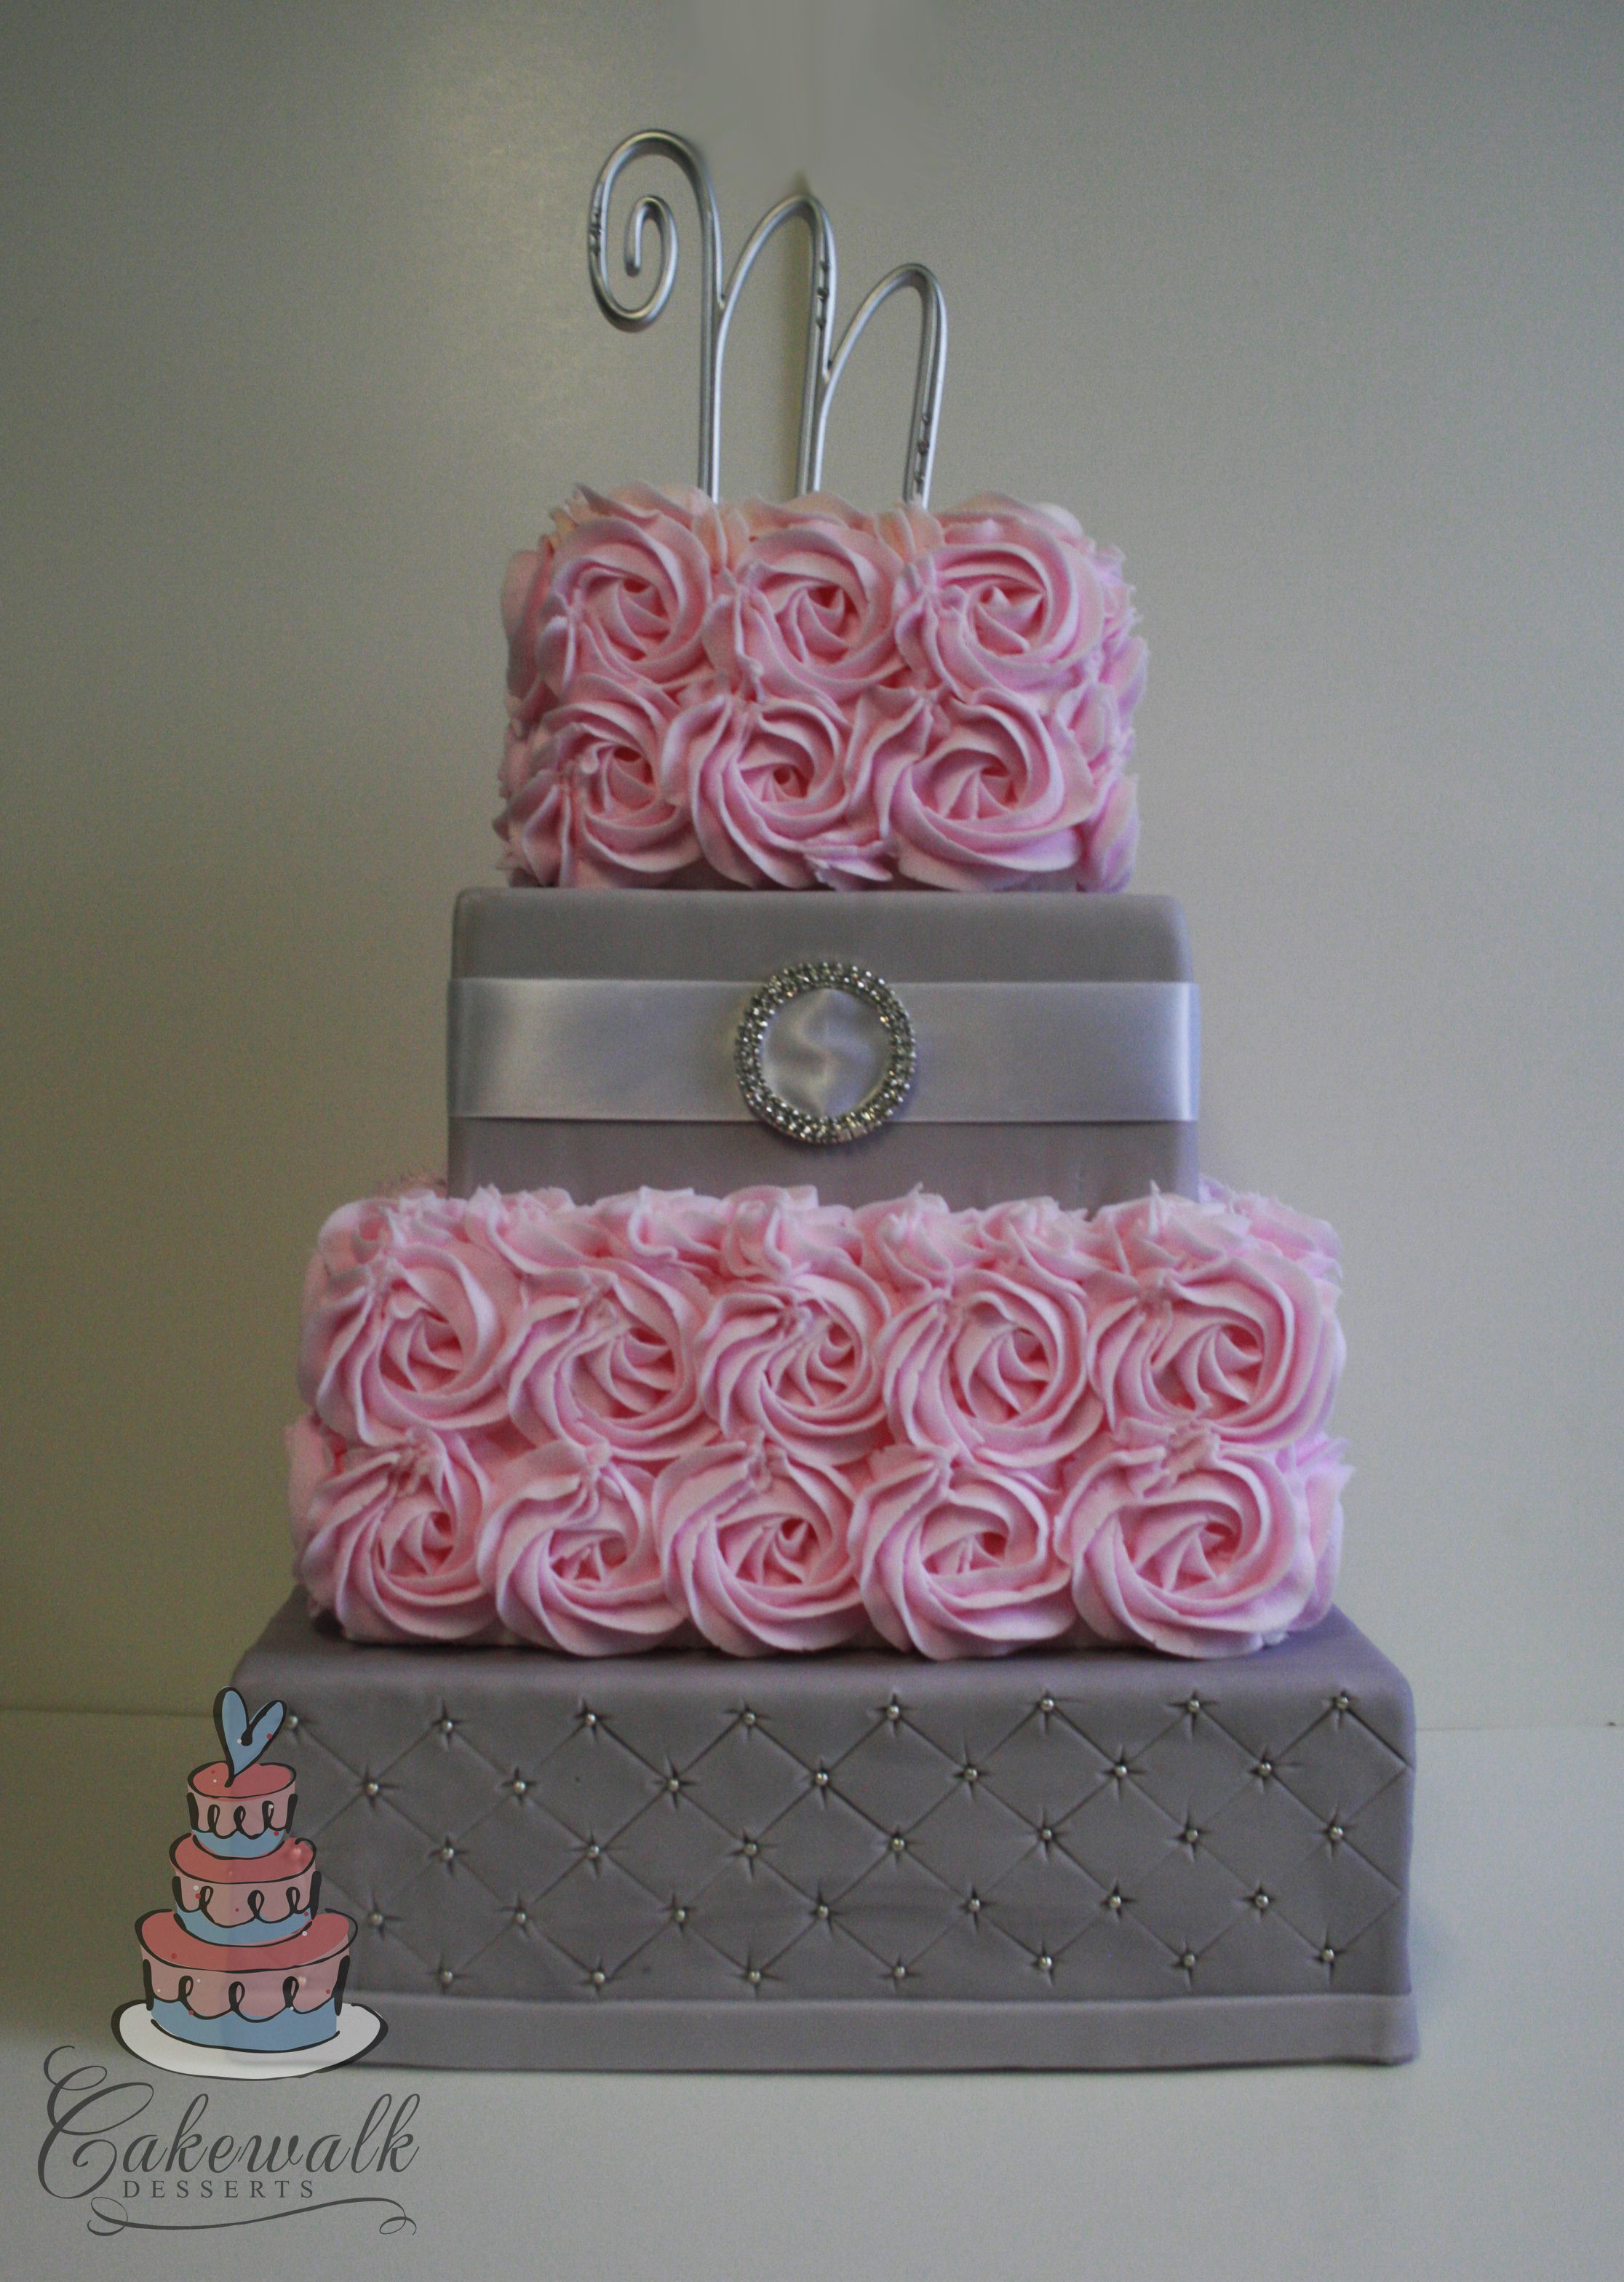 4 tier square wedding cake Pink buttercream roses grey